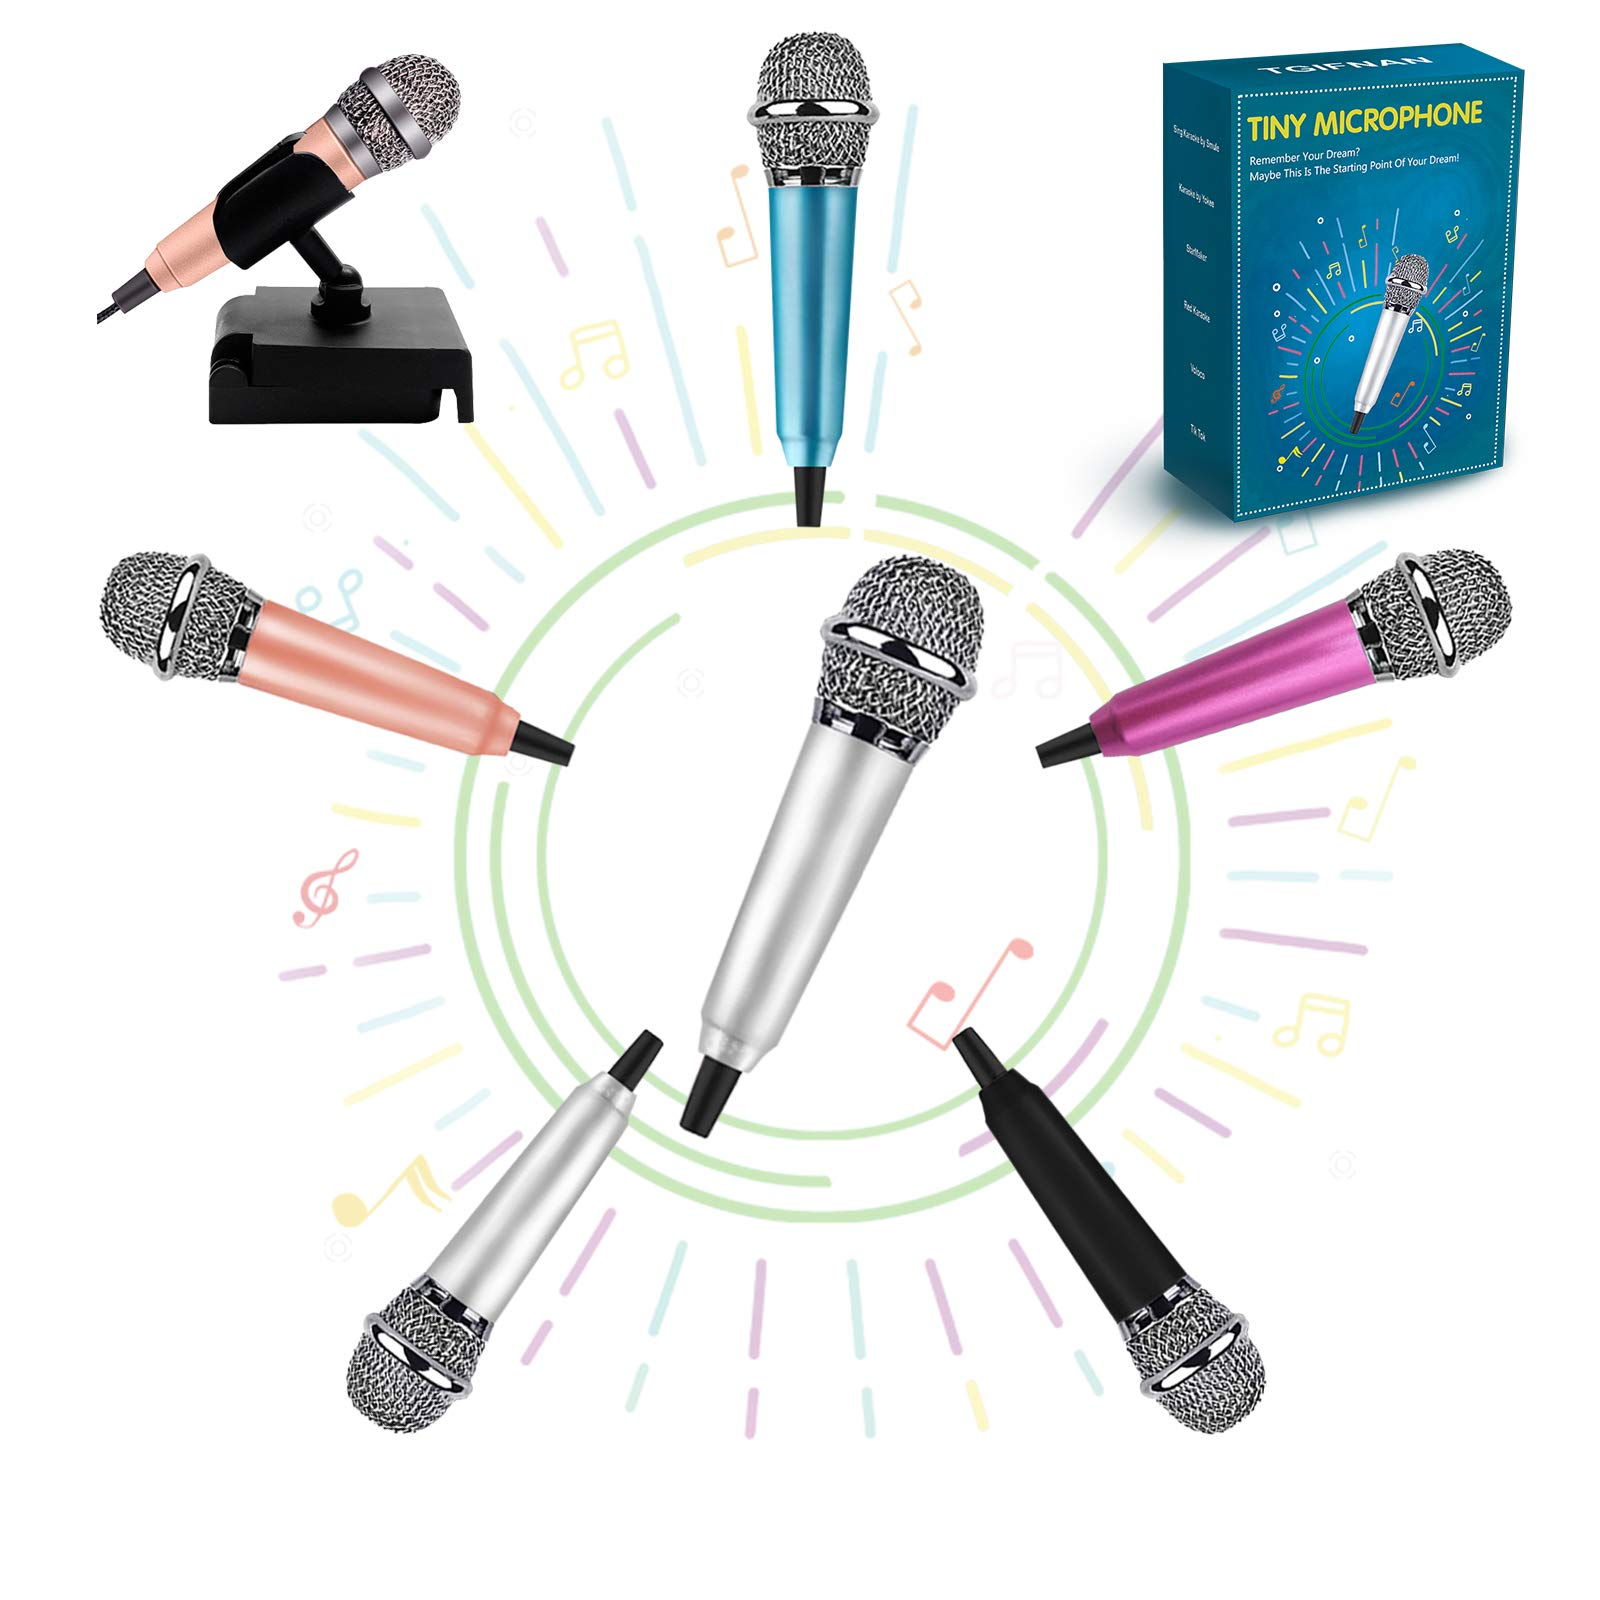 Mini Microphone Karaoke Microphone Tiny Microphone,Mini Microphone for Singing, Recording and Listening to Songs,Mic for iPhone/Android/PC (Silver)